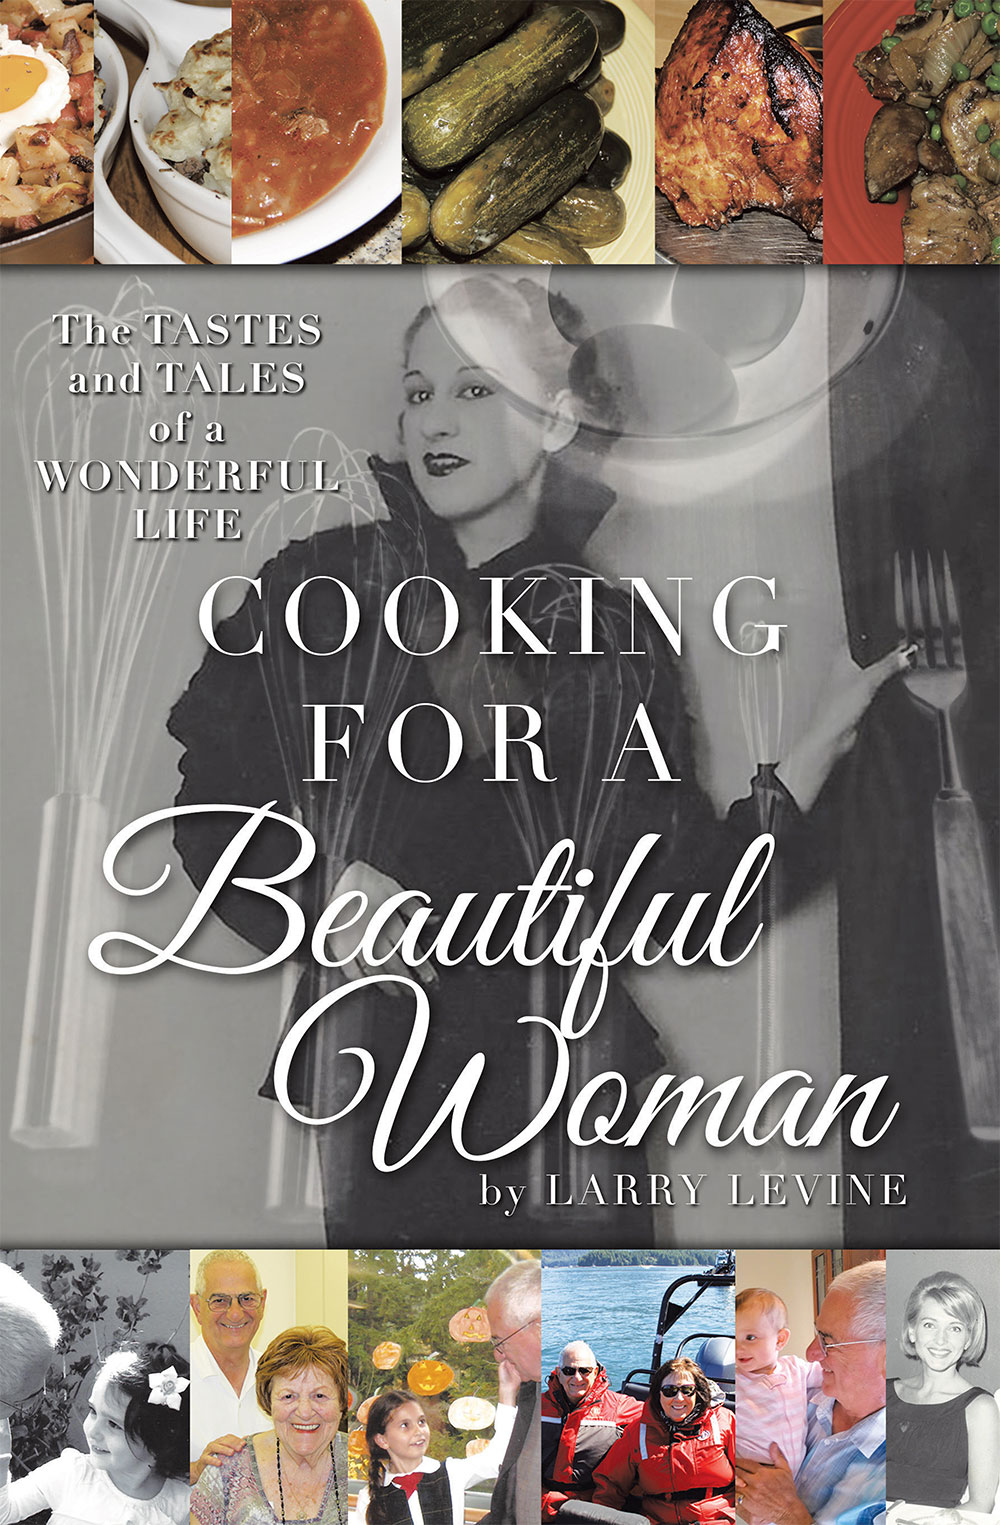 Cooking for a Beautiful Woman: The Tastes and Tales of a Wonderful Life | Larry Levine, Author